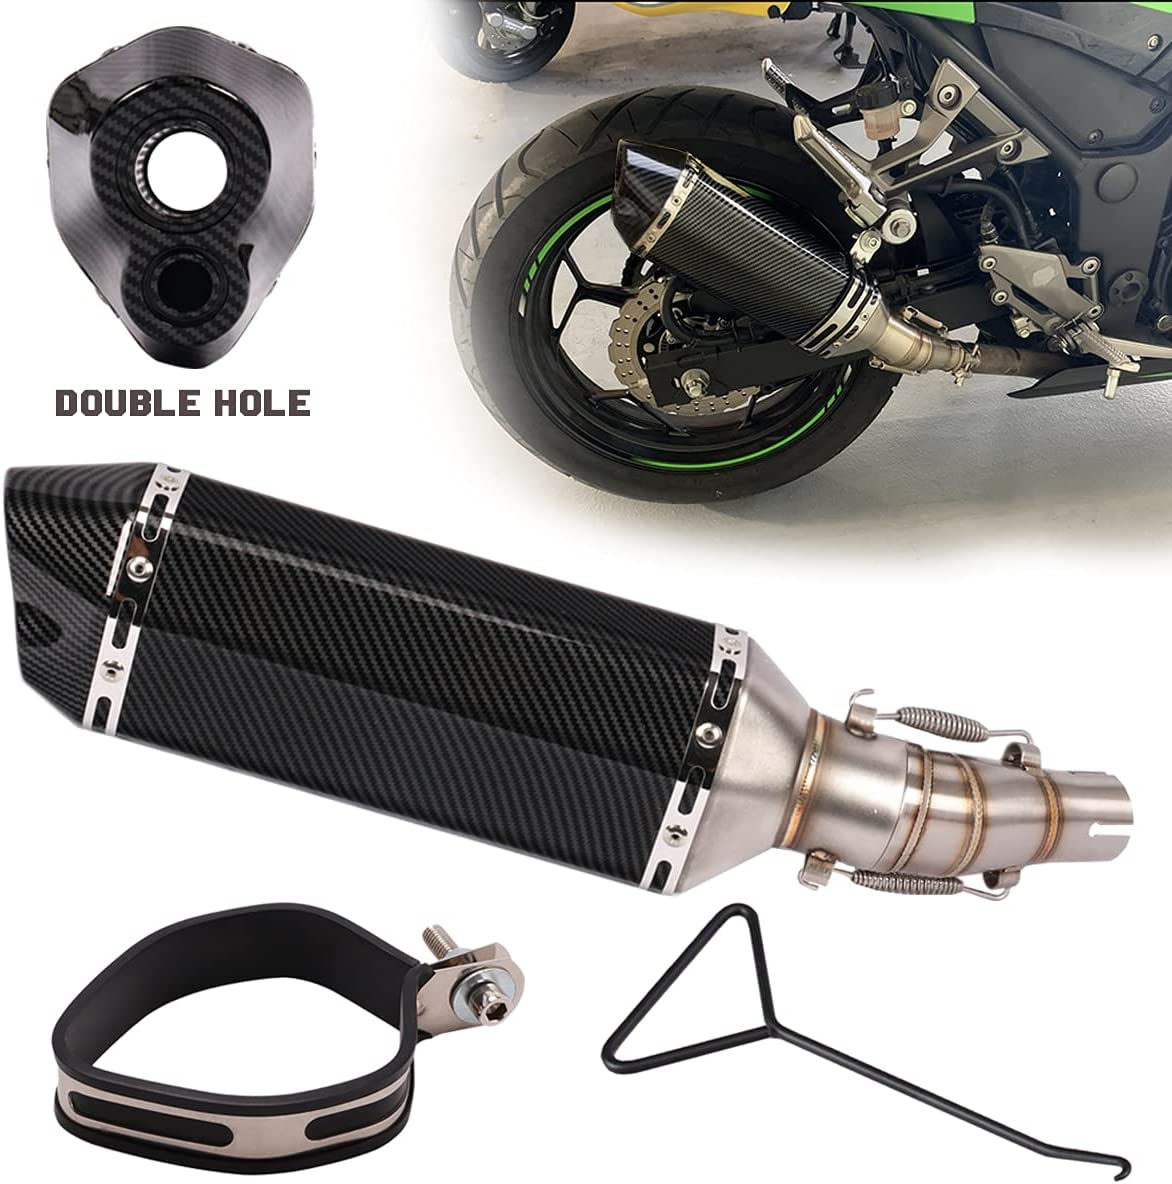 KAJIMOTOR 51mm Slip On 2'' Exhaust Dual Motorcycle System Outlet Dealing full price Max 47% OFF reduction